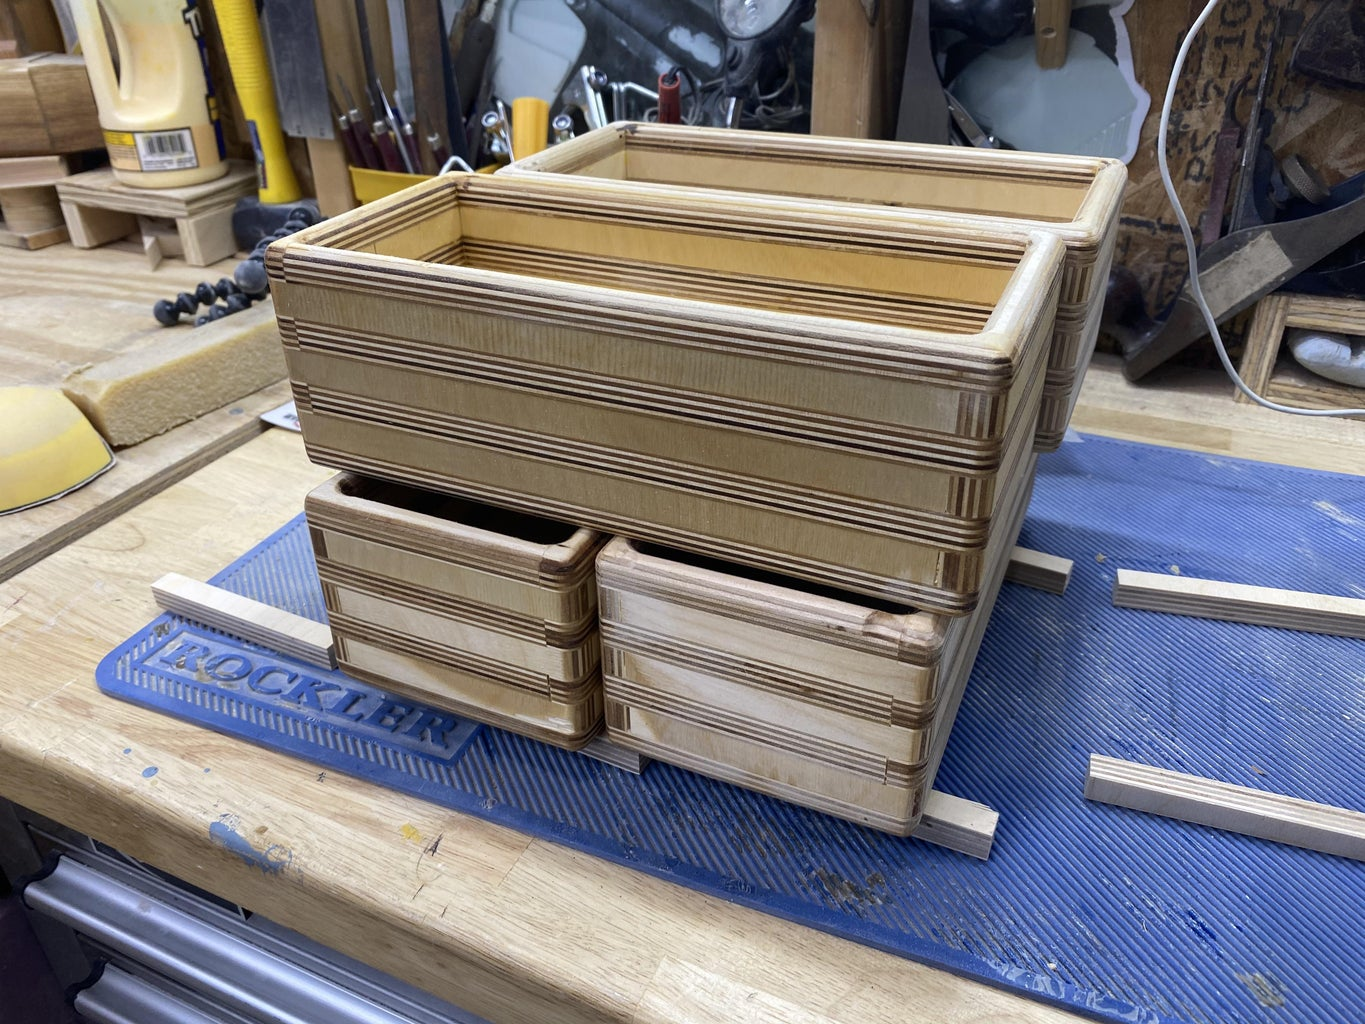 Patterned Plywood Boxes With No Jig Box Joints